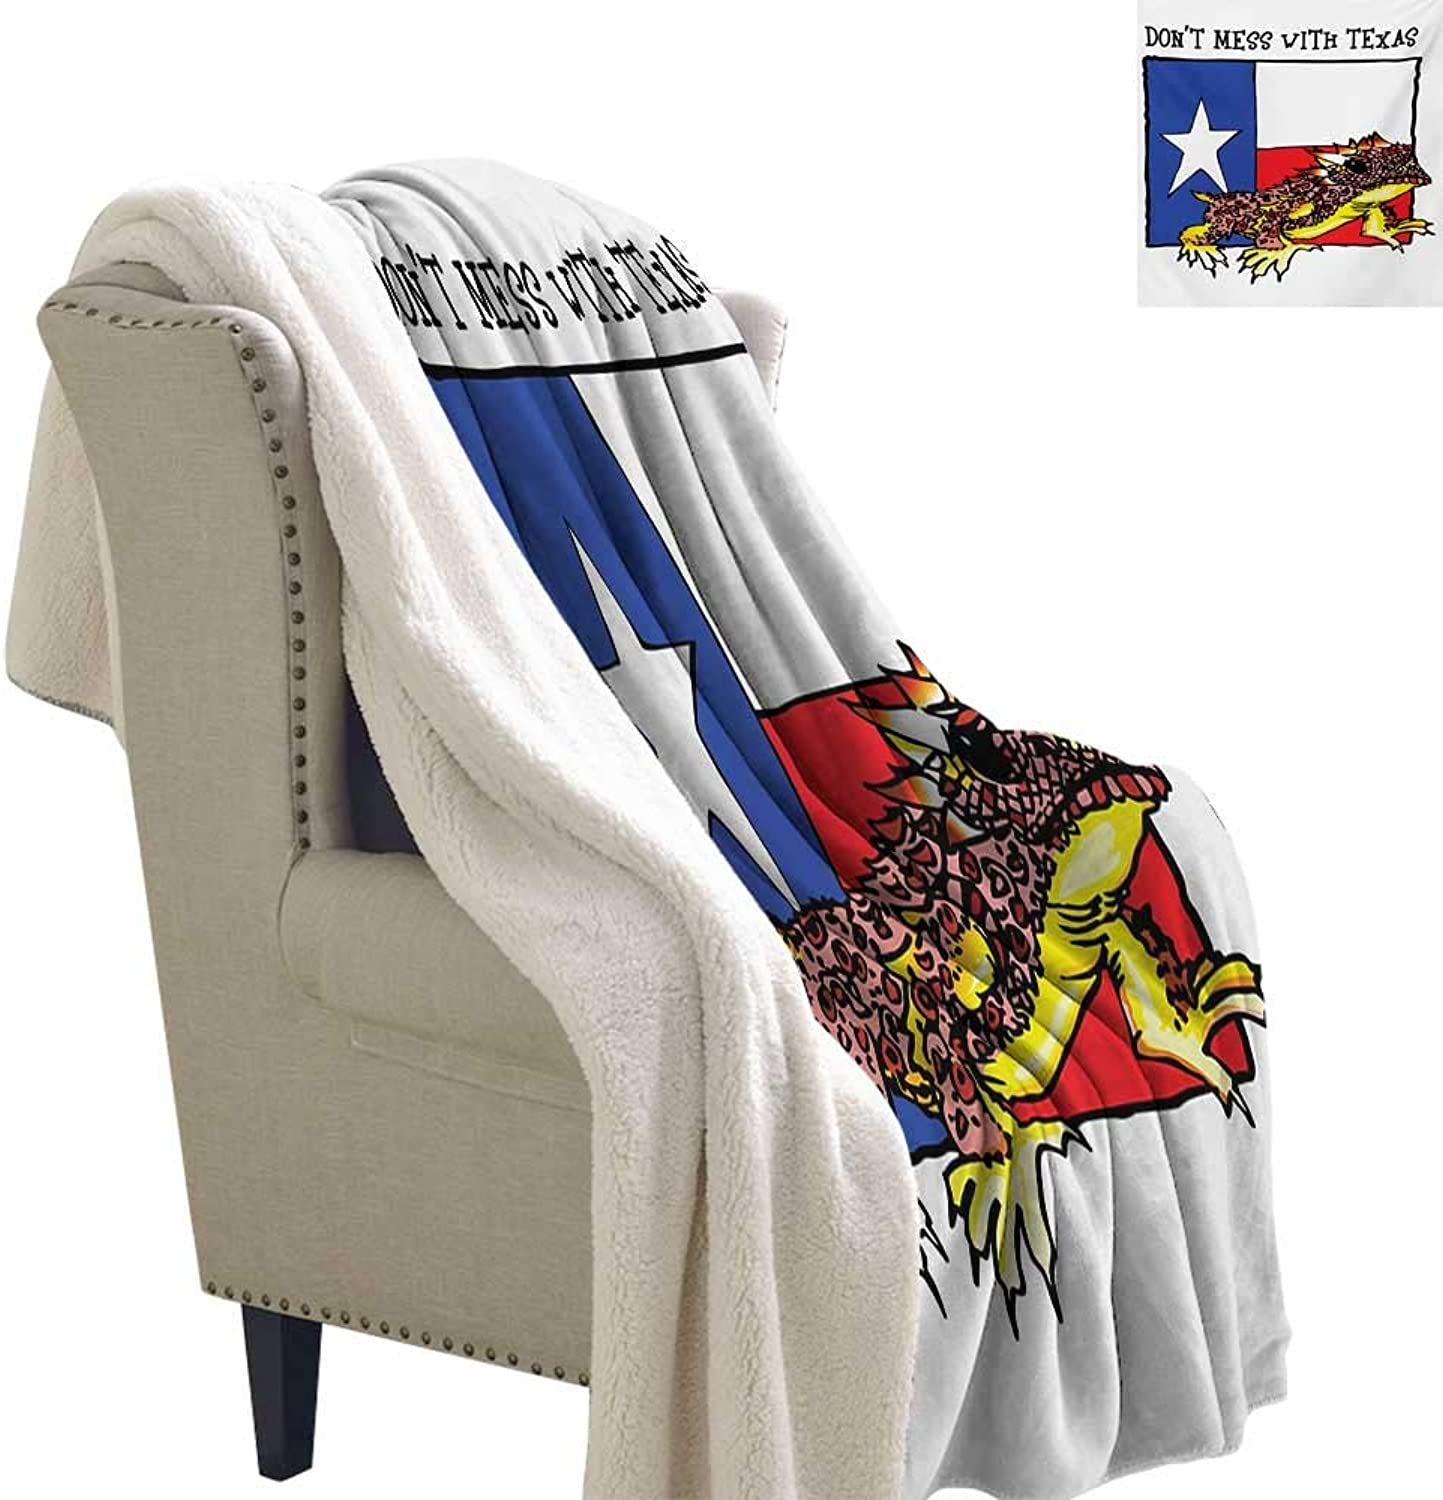 Gabriesl Reptile Blanket Small Quilt 60x32 Inch Illustration of Cute Warrior Horned Toad Standing for Texas City American Dream Digital Printing Blanket Multicolor